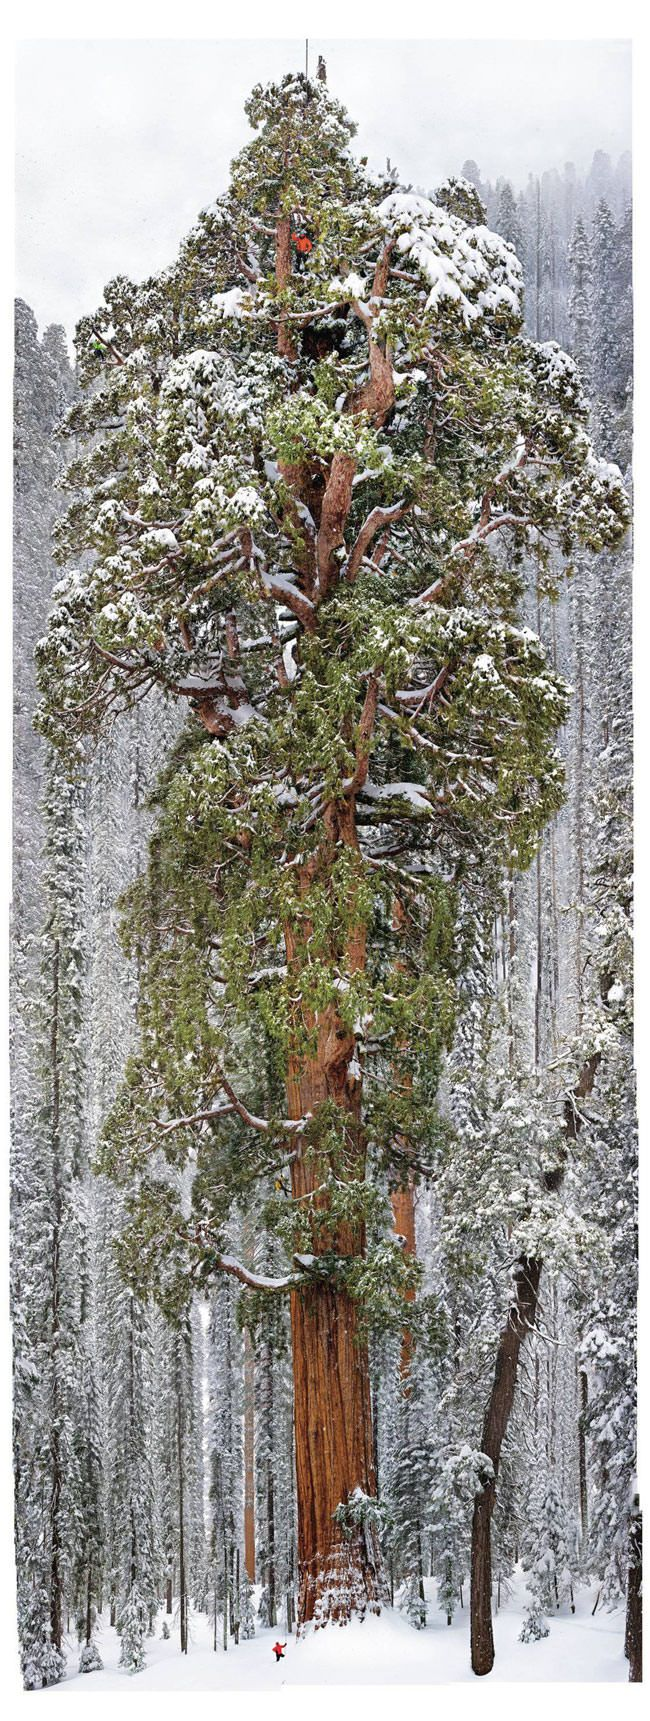 sequoia El Presidente The Presidente giant tree5